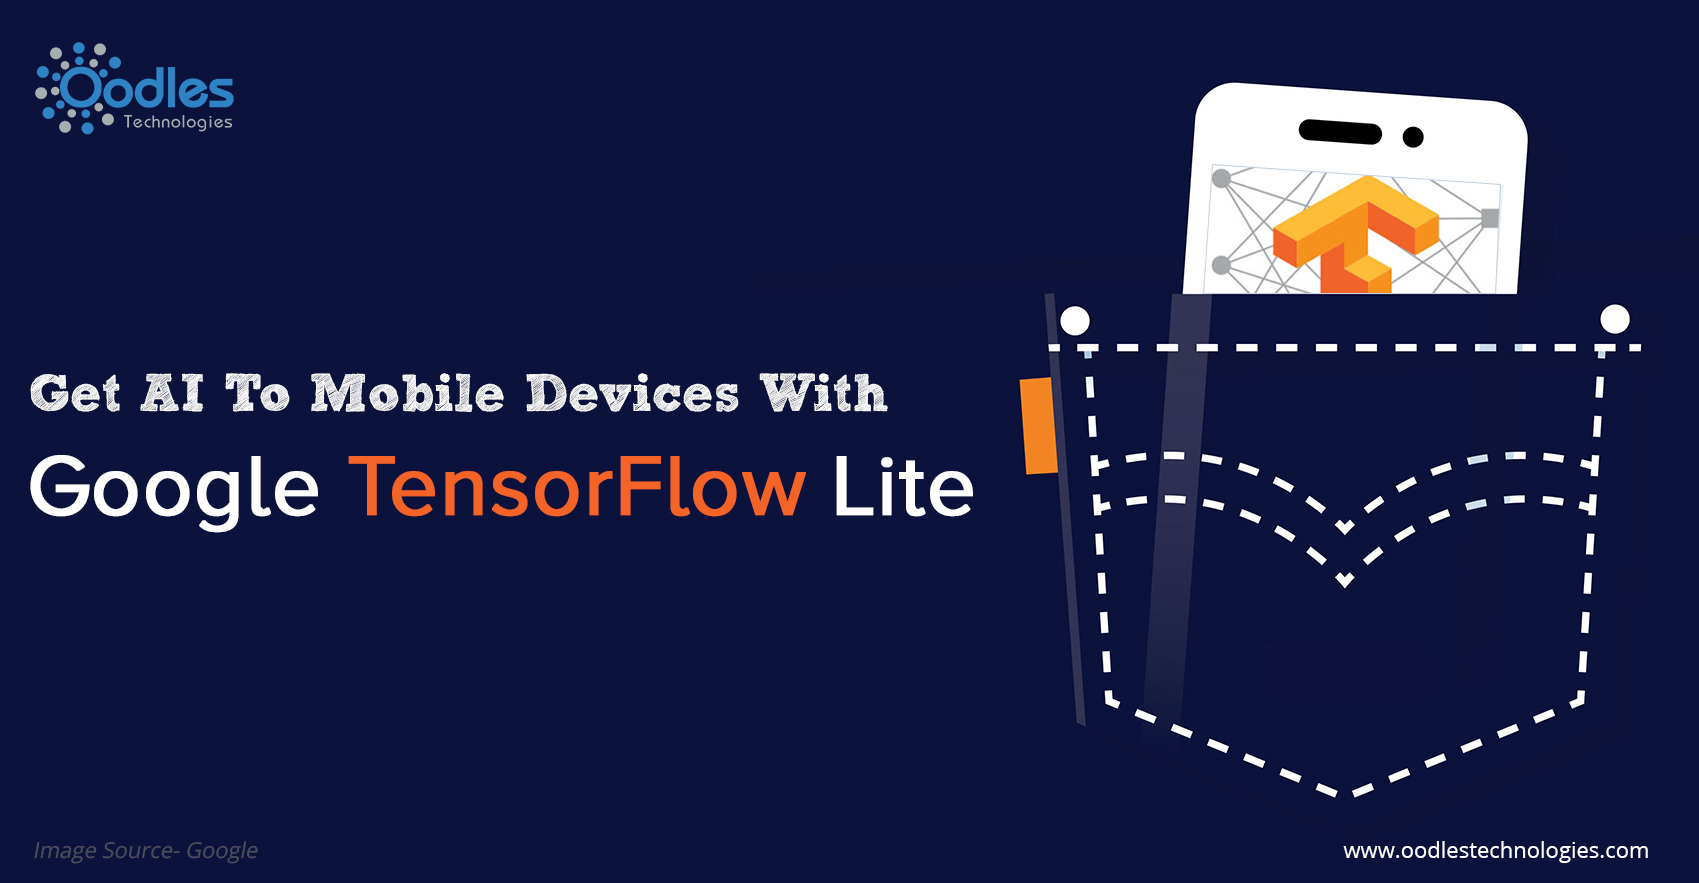 Get AI To Mobile Devices With Google TensorFlow Lite